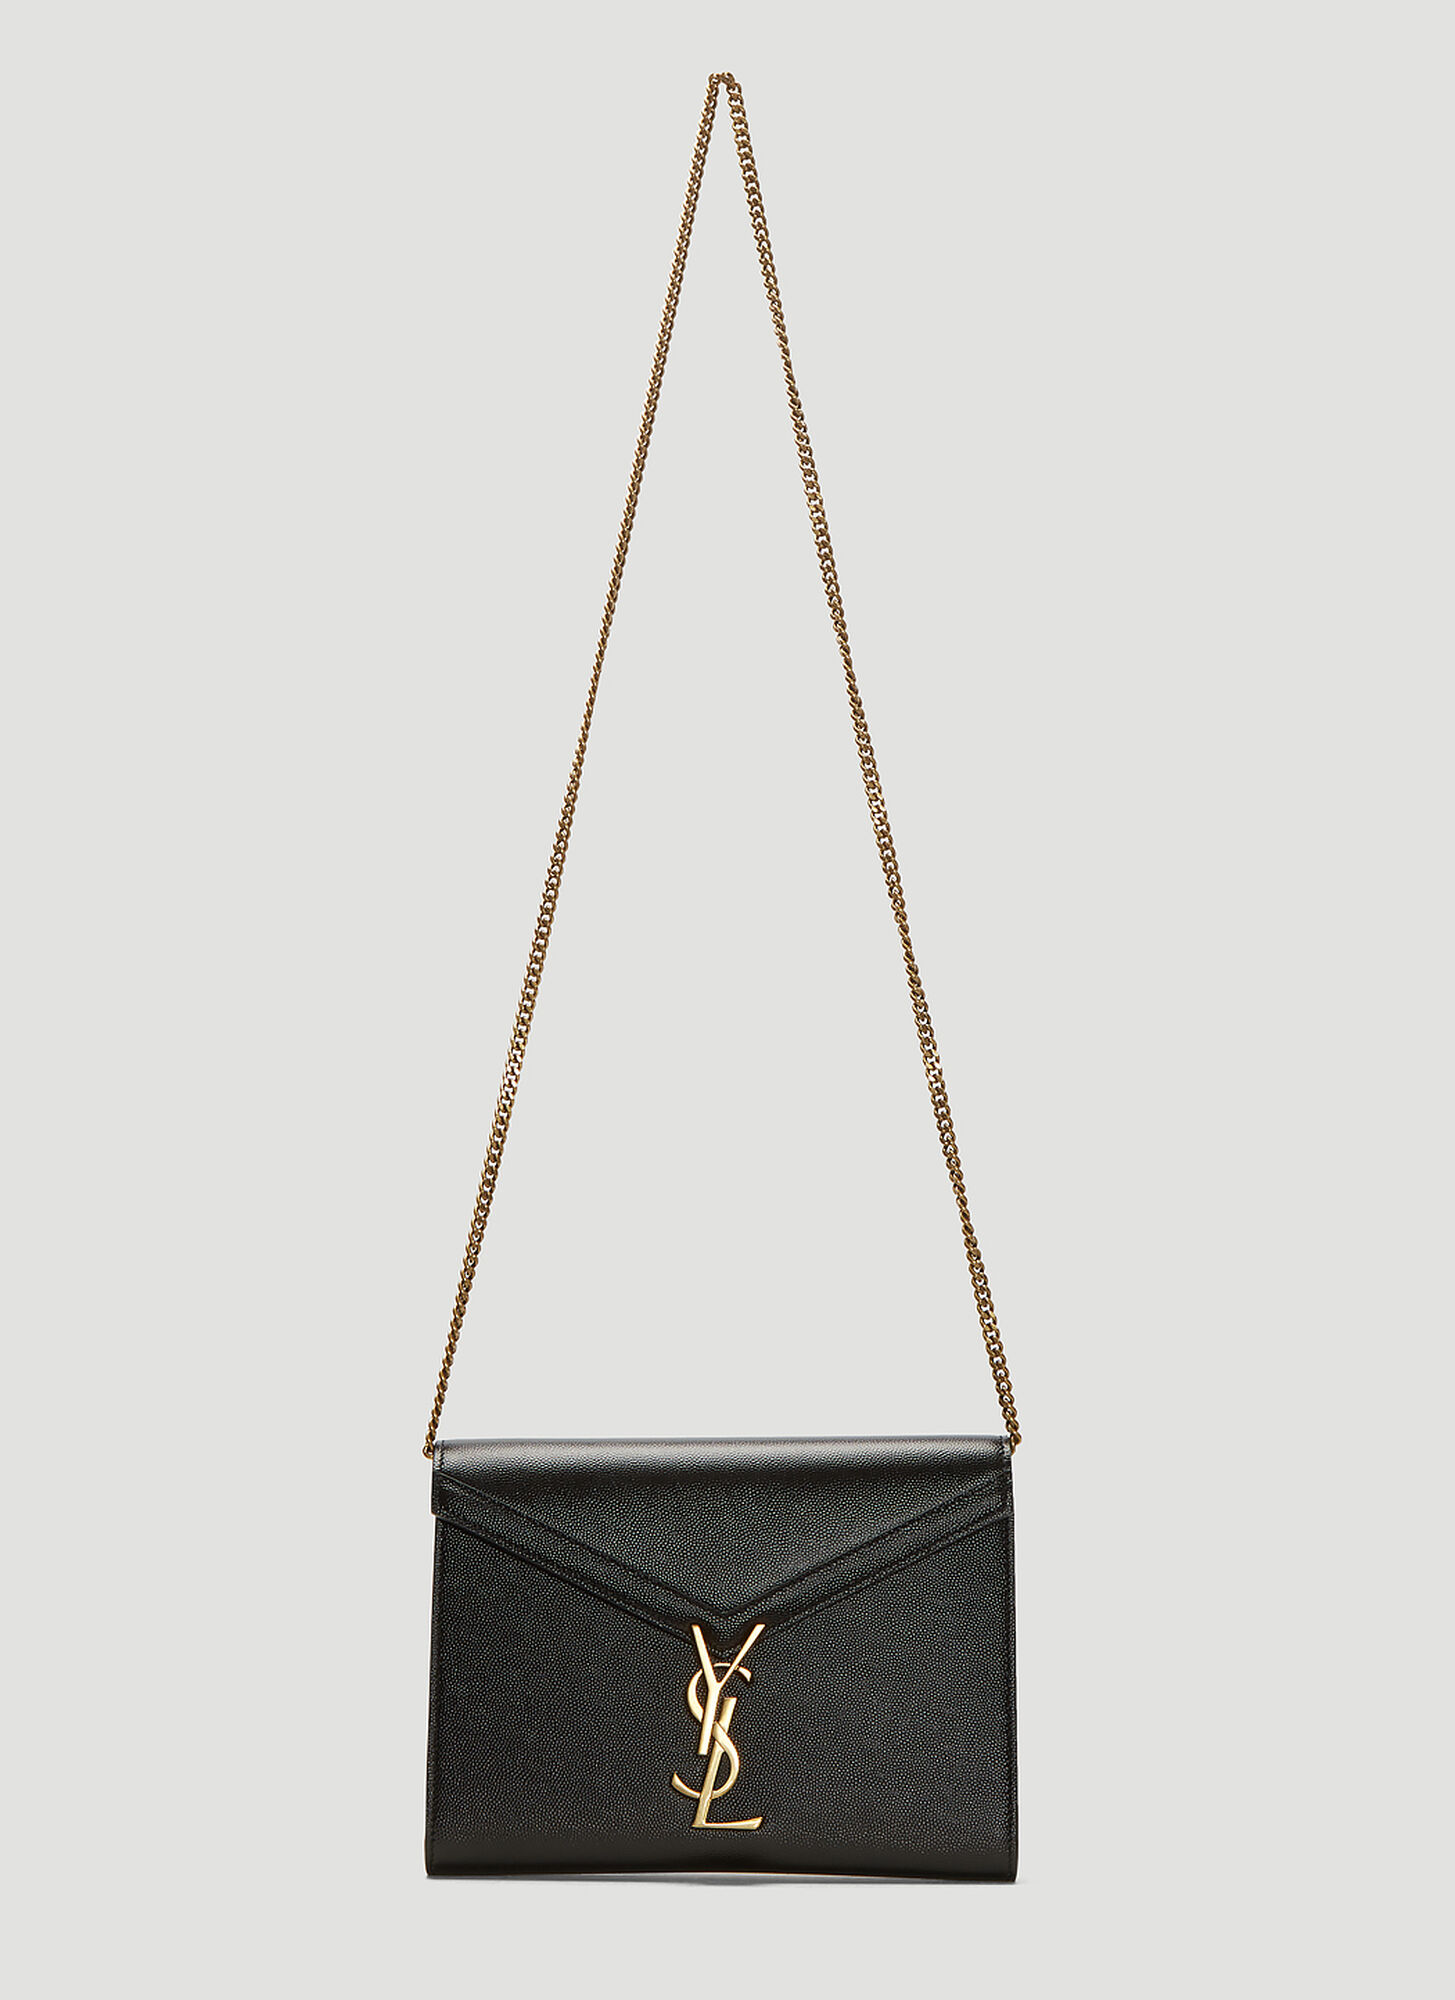 Saint Laurent Cassandra Grain de Poudre Chain Wallet Bag in Black